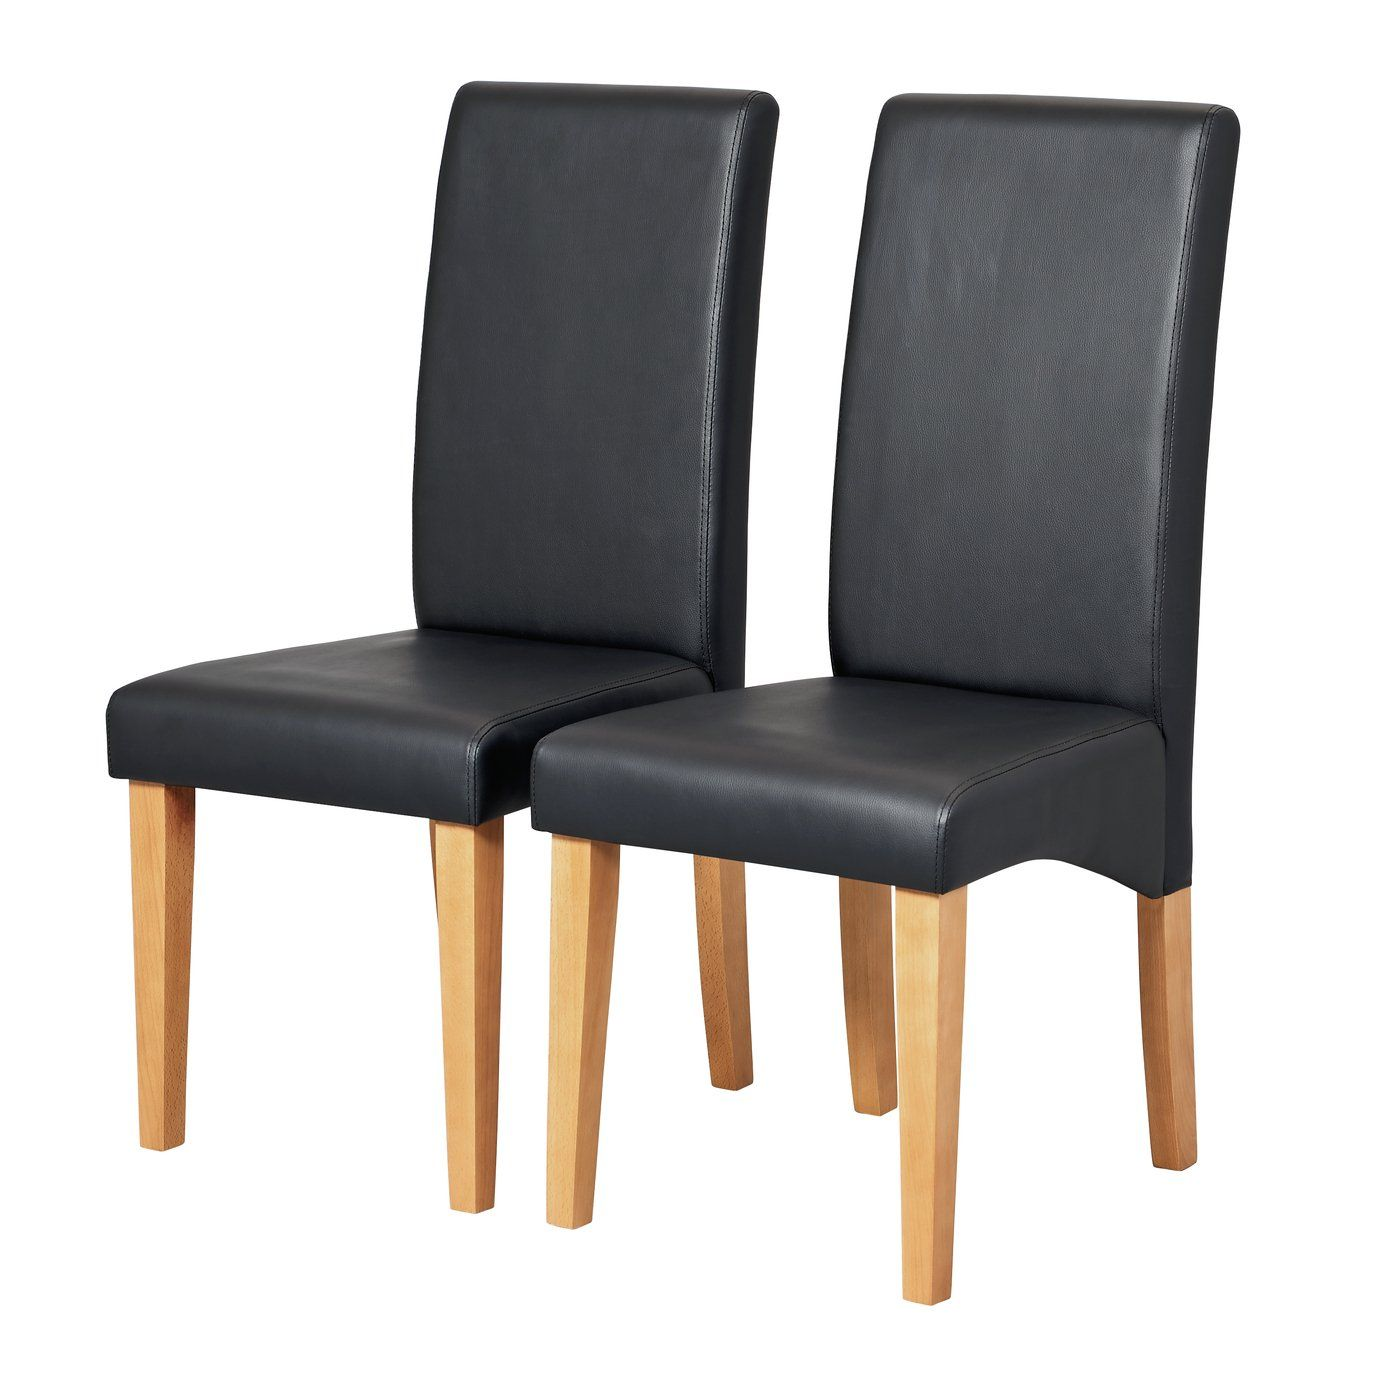 Argos Home Pair Of Skirted Dining Chairs Black In 2020 Chair